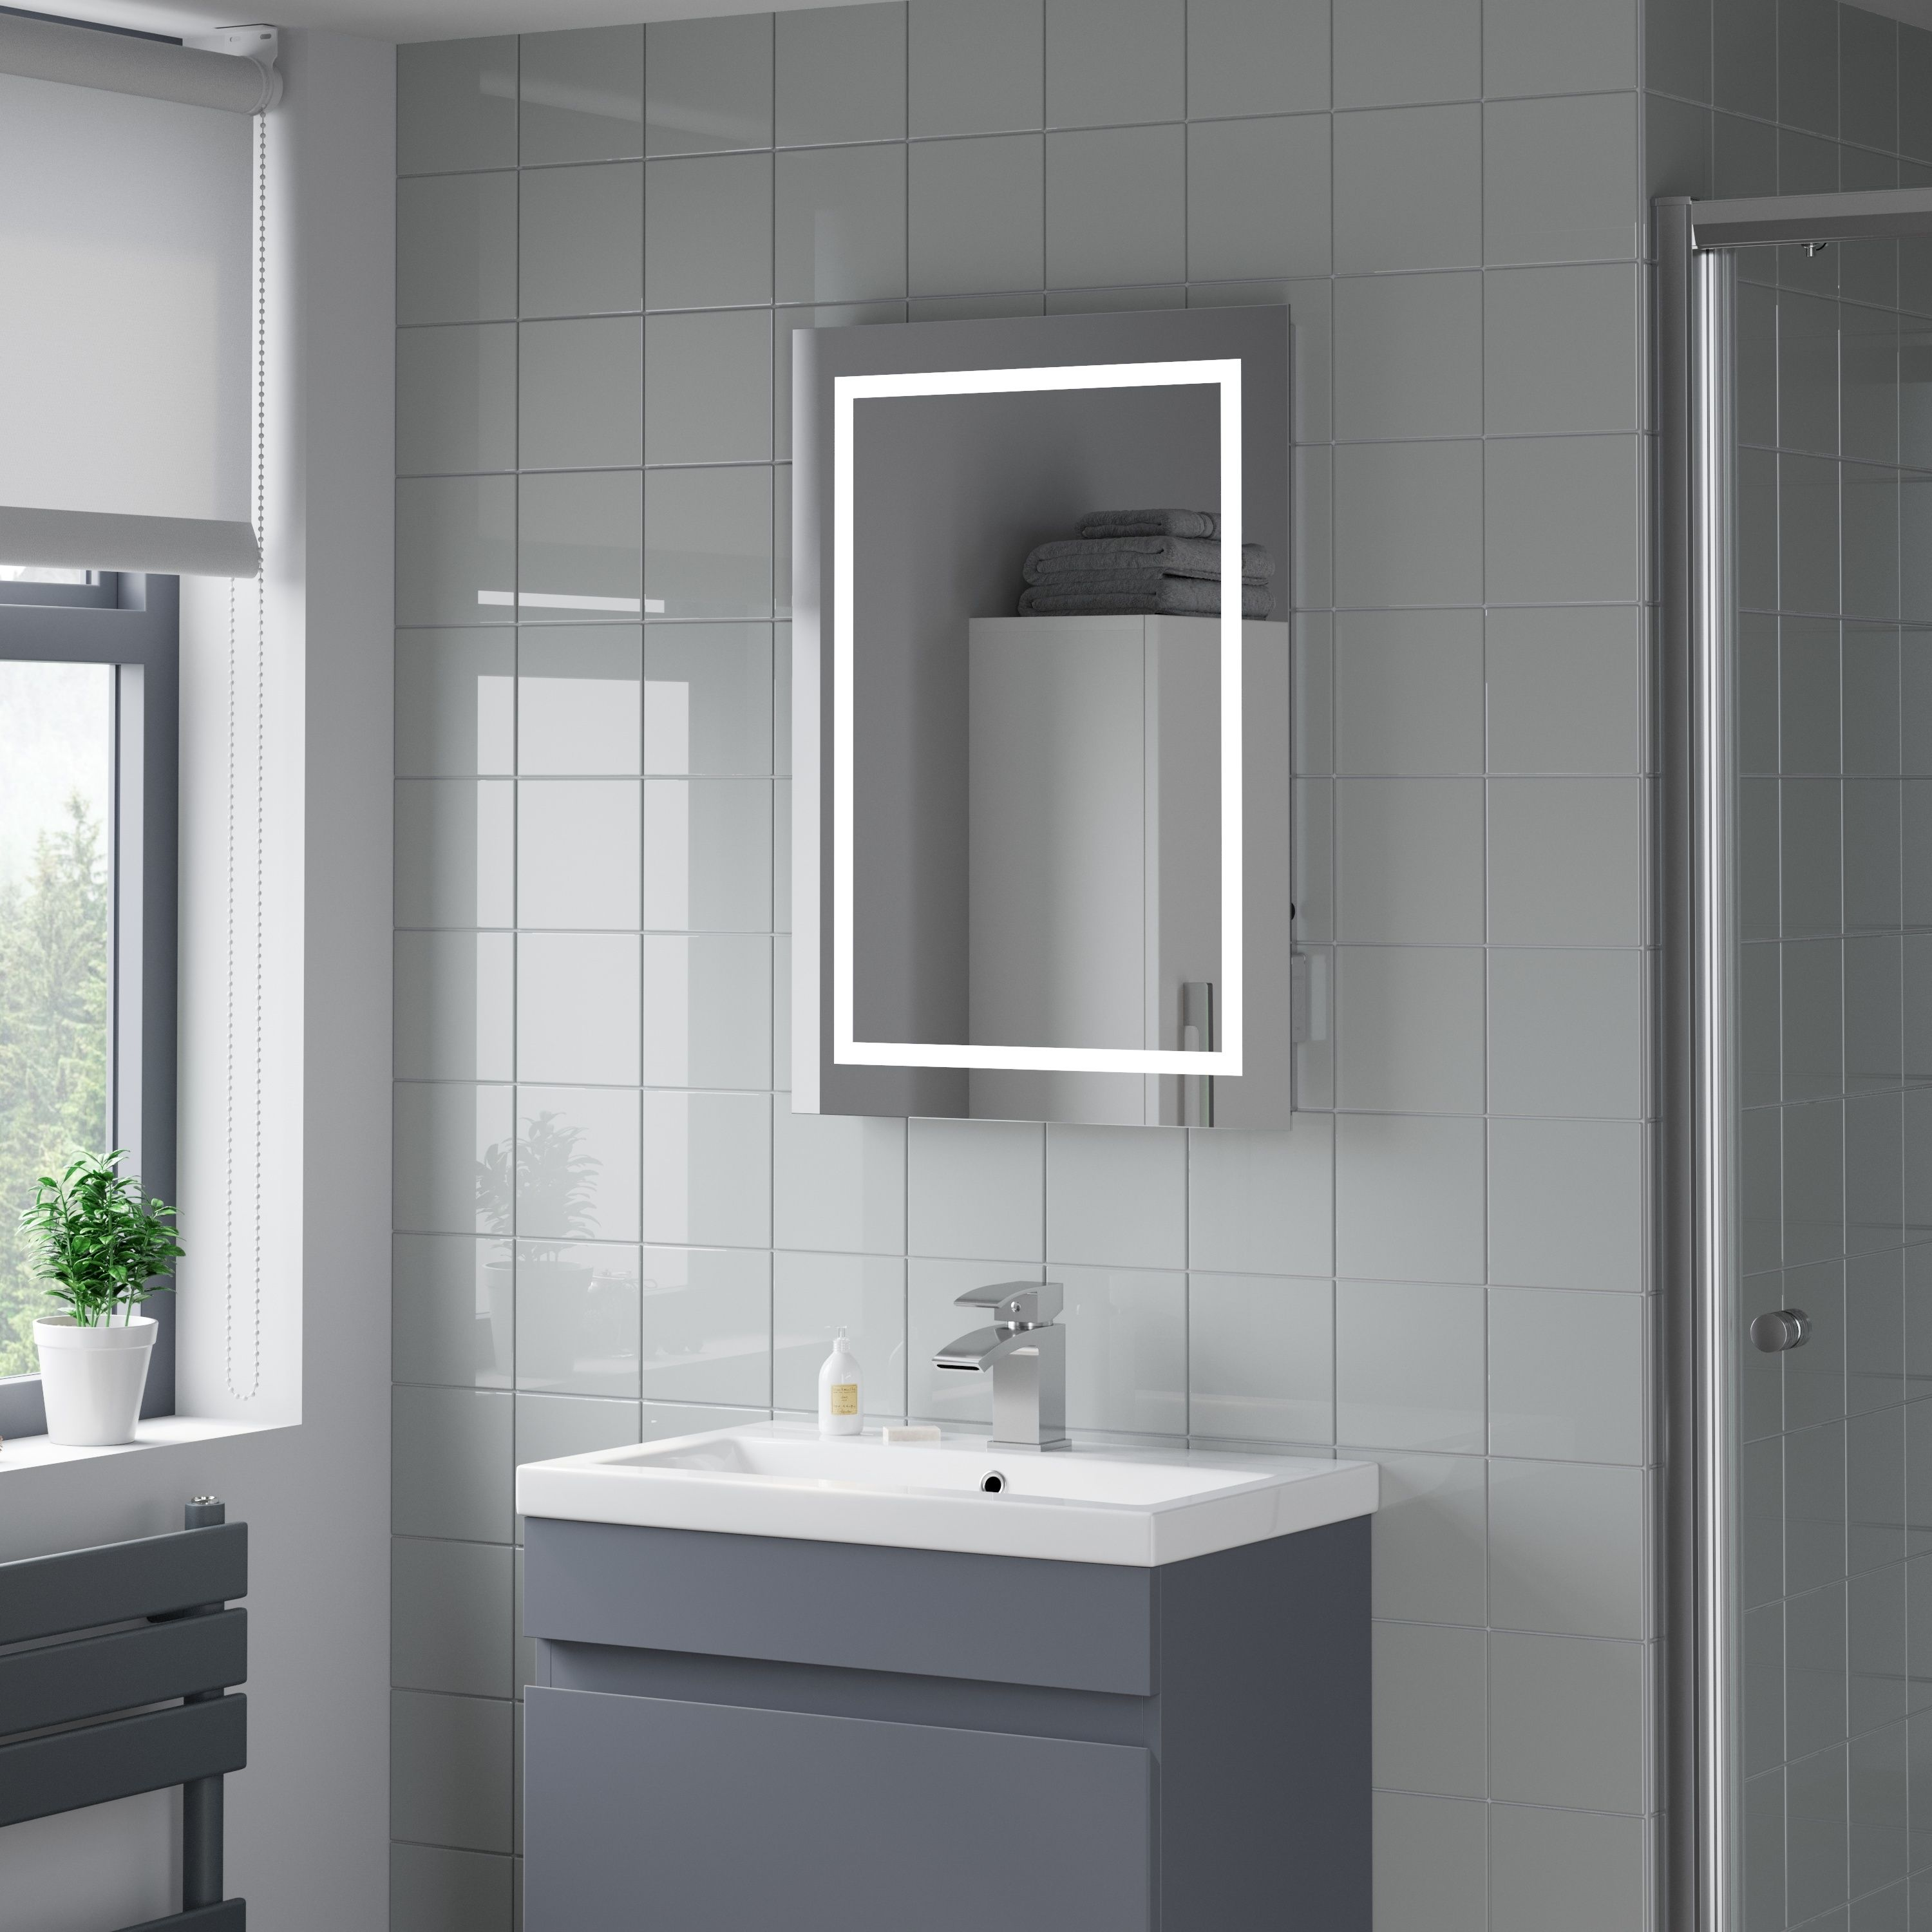 Artis Niteo Led Illuminated Mirror With Shaver Socket And Demister 500 X 700mm Mains Power Illuminated Mirrors Led Mirror Bathroom Led Mirror